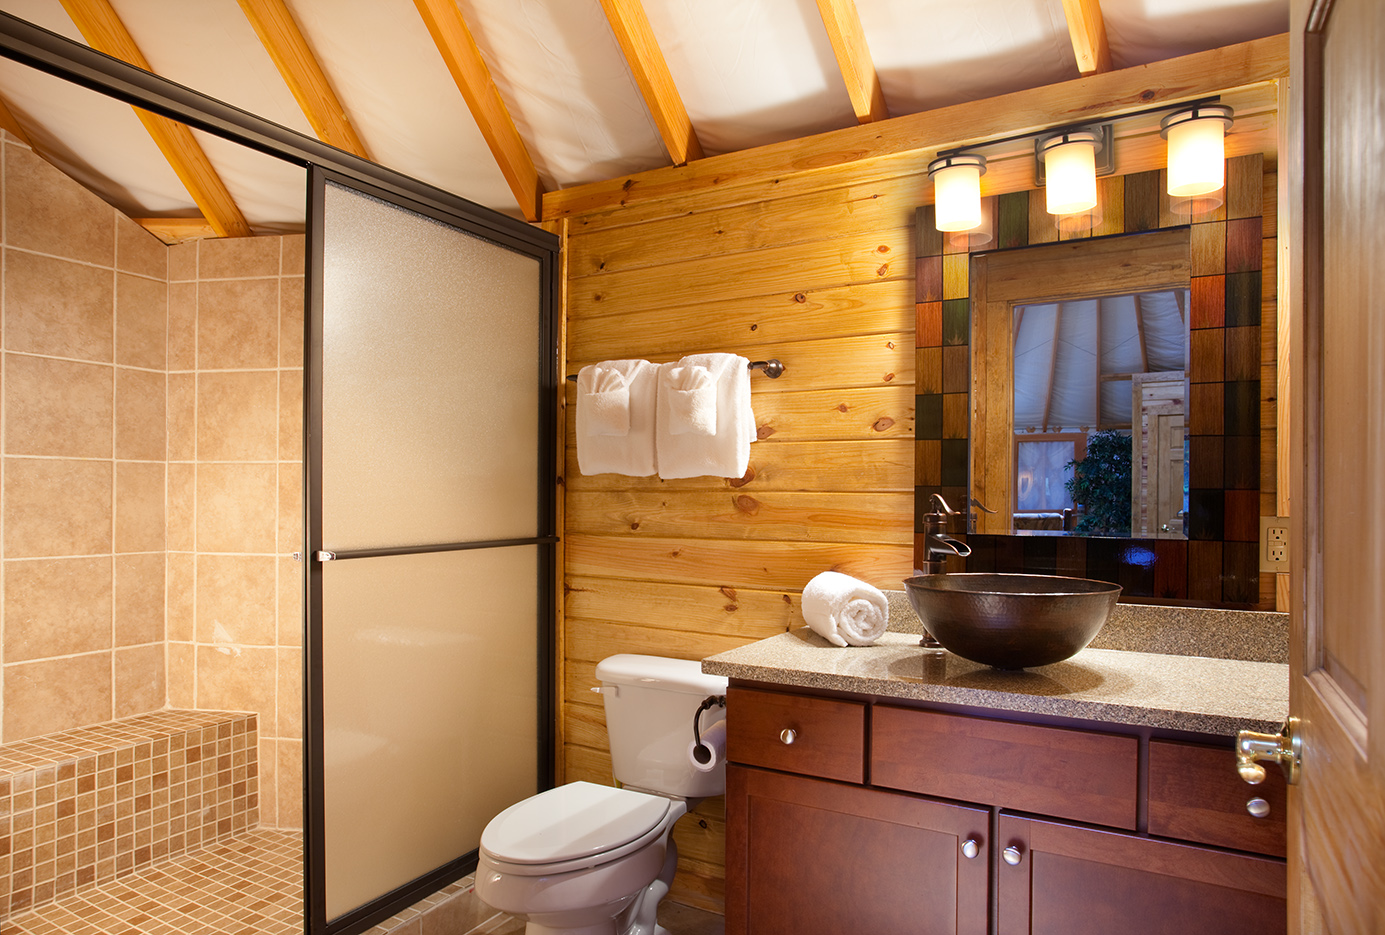 Cool Toilets For Sale Yurt Interiors Pacific Yurts